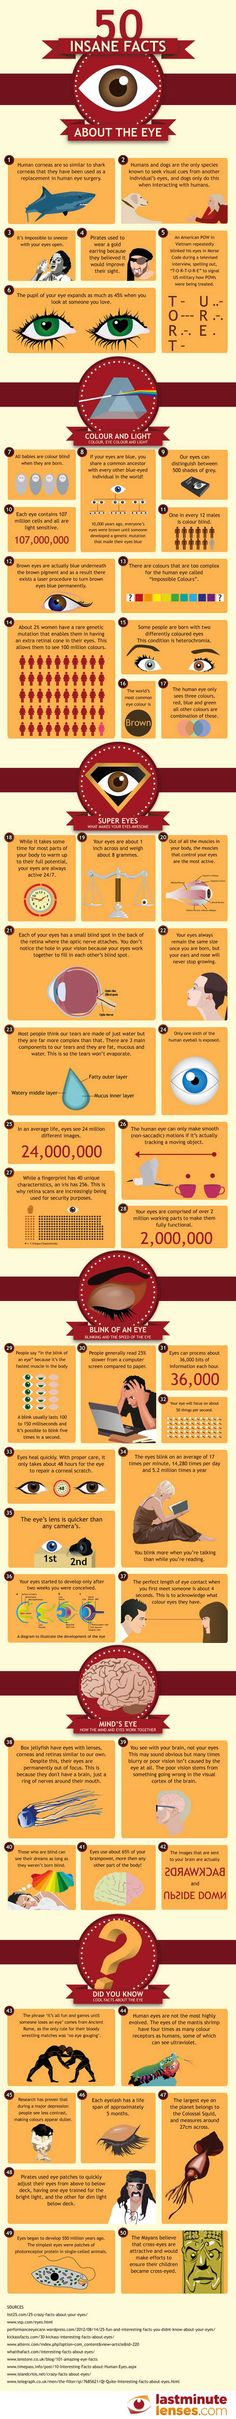 50 insane facts about the eye 50 insane facts about the eye -From how much your eye weighs to what makes is in a tear drop, this insightful Infographic has you covered with everything you ever wanted to know about the human eye. Human Eye, Human Body, The More You Know, Did You Know, Eye Facts, Brain Facts, E Mc2, Wtf Fun Facts, Random Facts